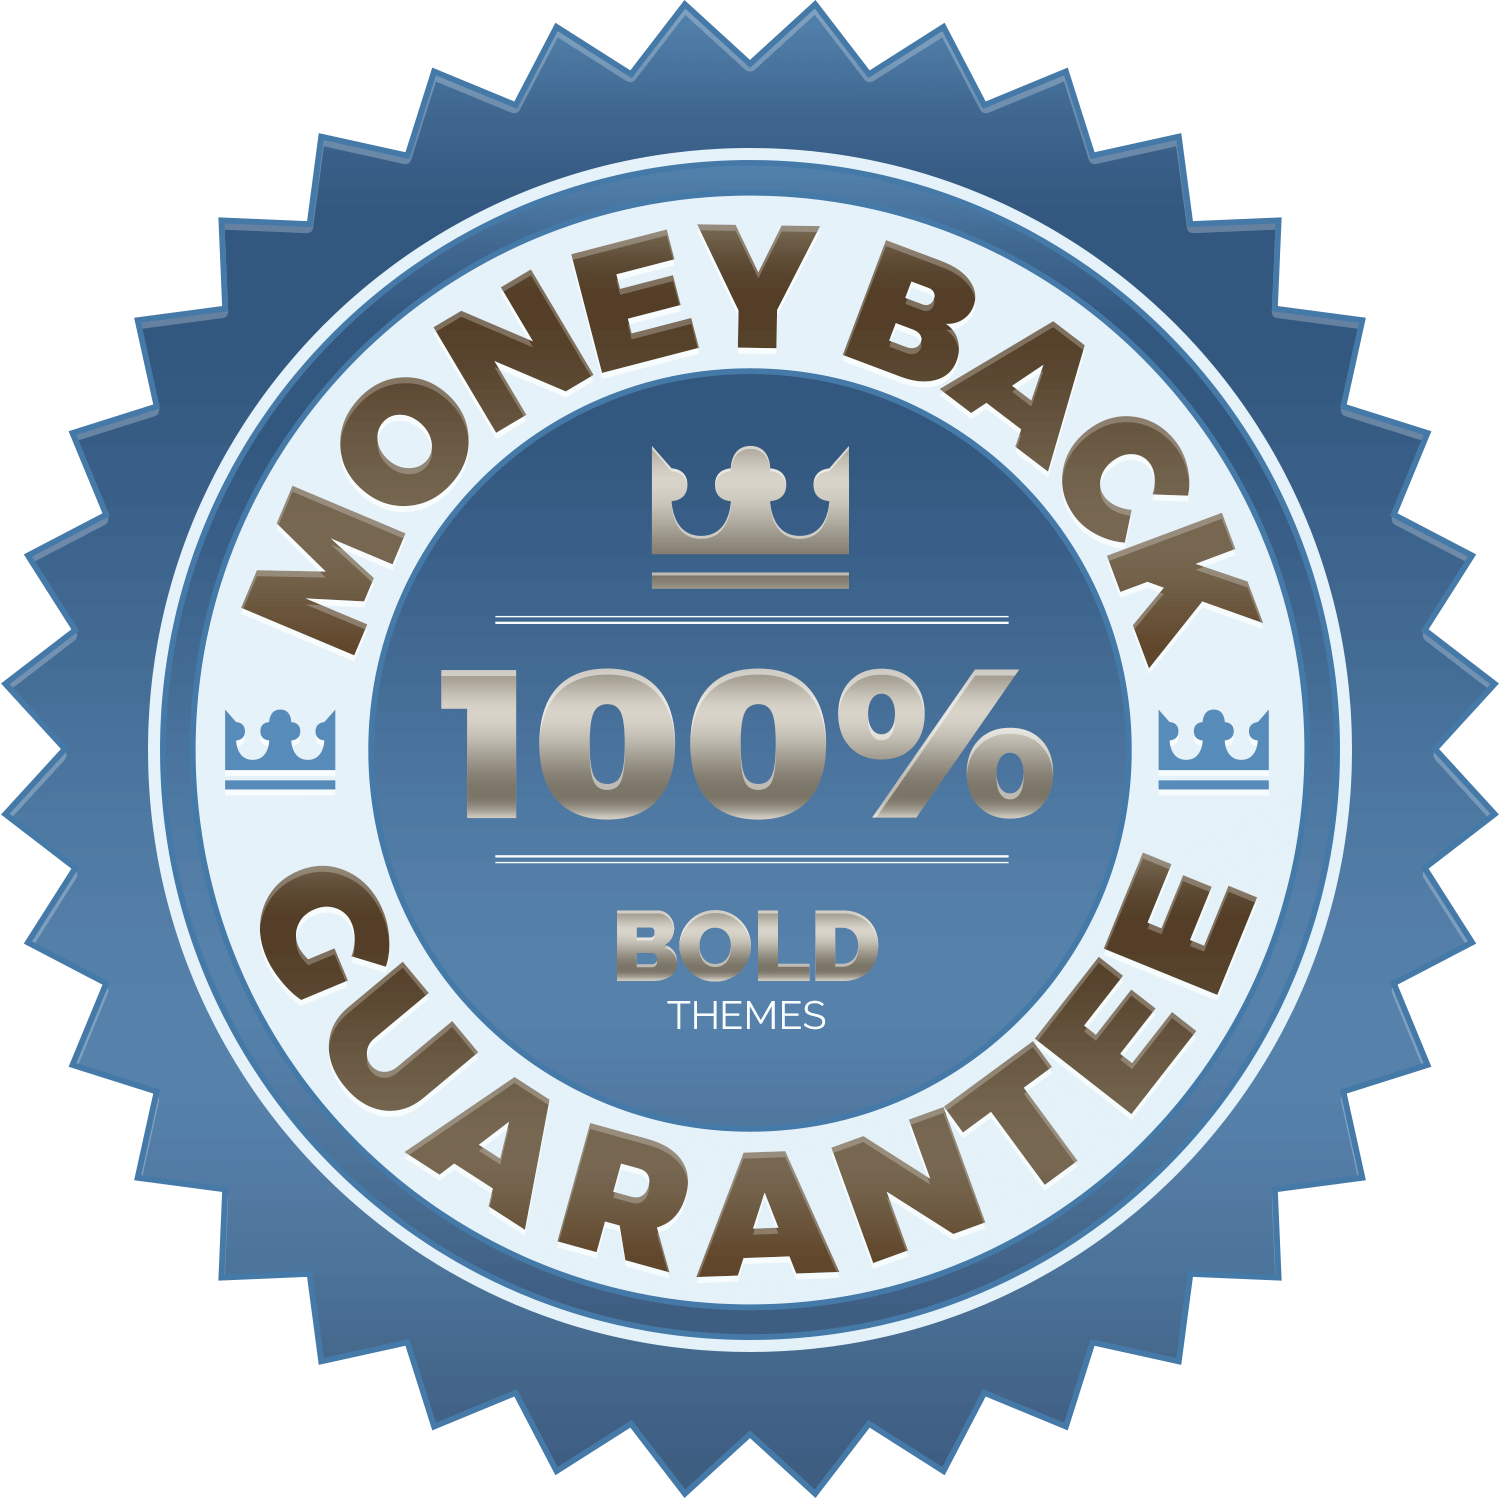 http://addison.bold-themes.com/wp-content/uploads/2017/06/Money-back-guarantee.png